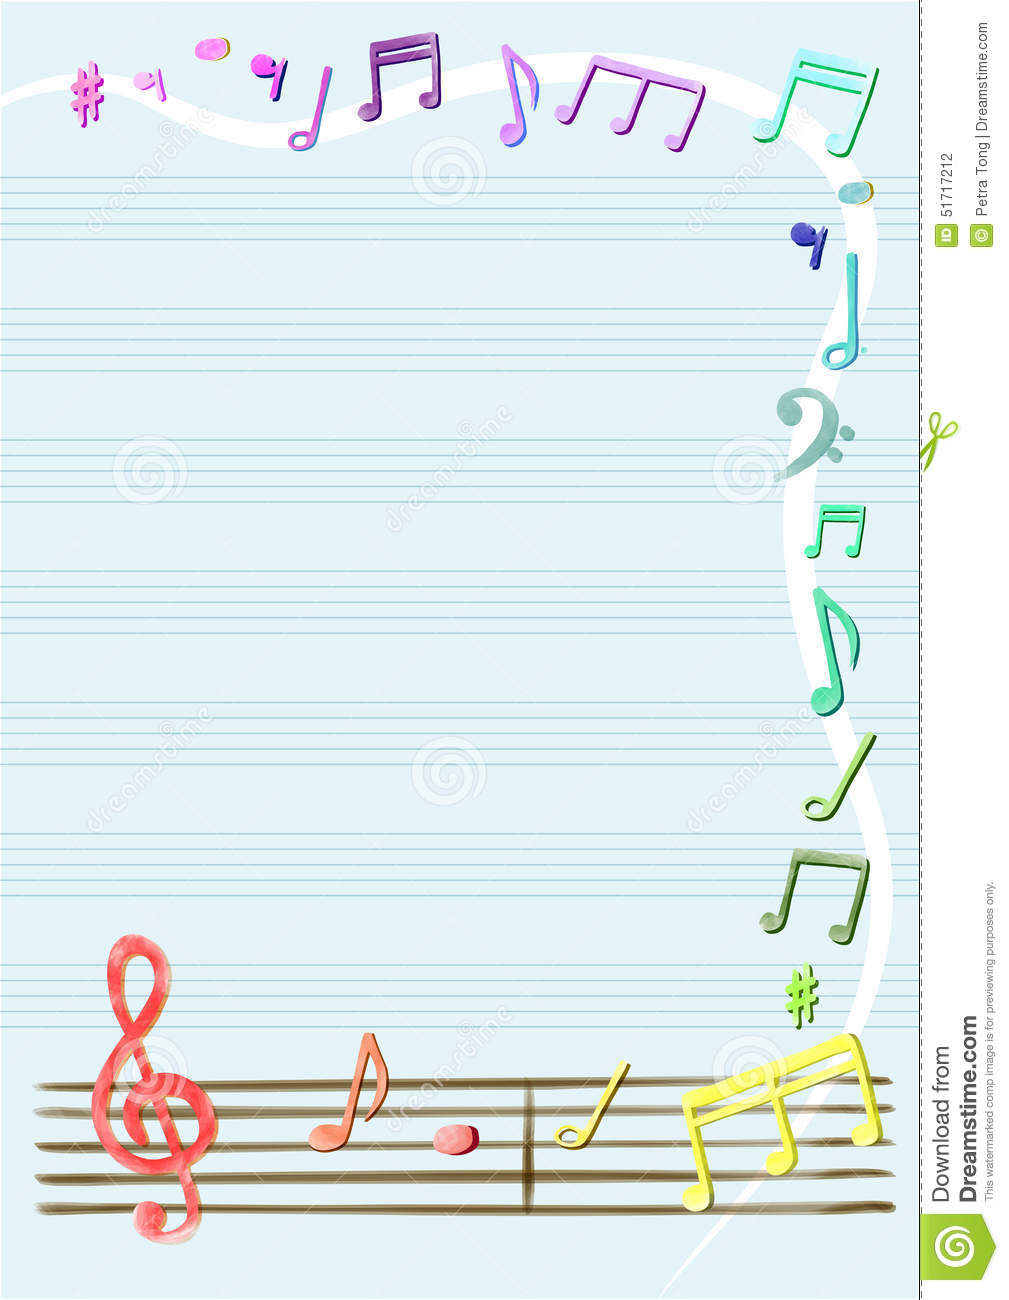 Musical Notes Vector In Notebook Or Frame, Border Stock ...